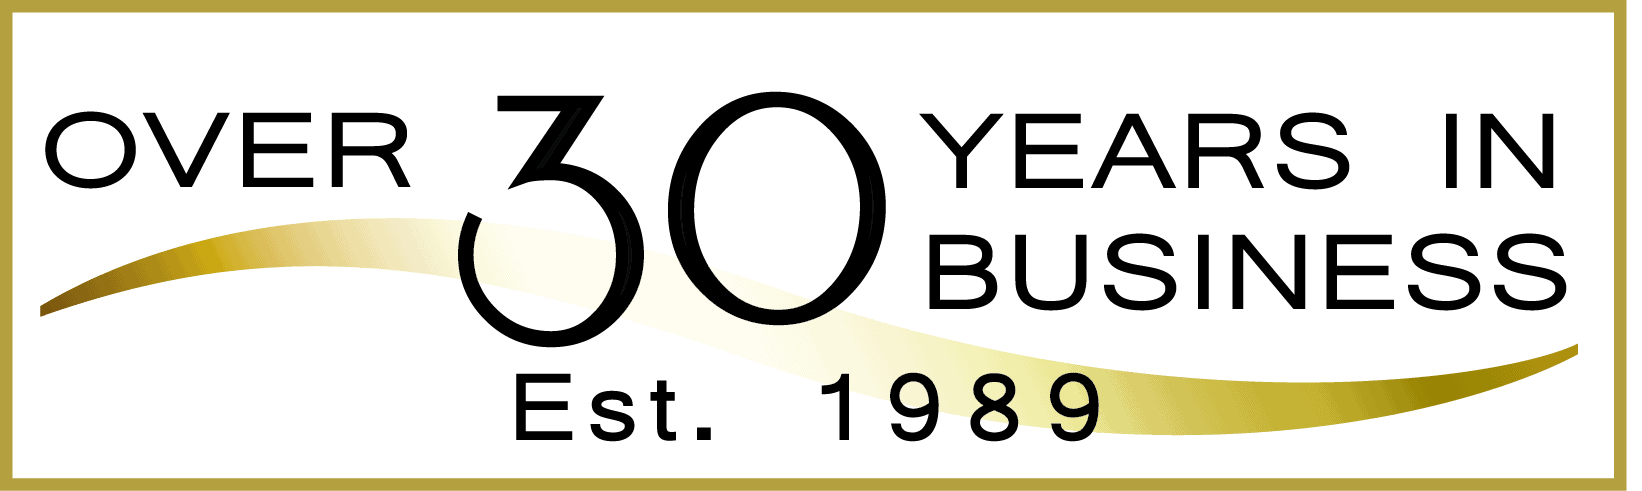 Over 30 years in business (Established 1989)